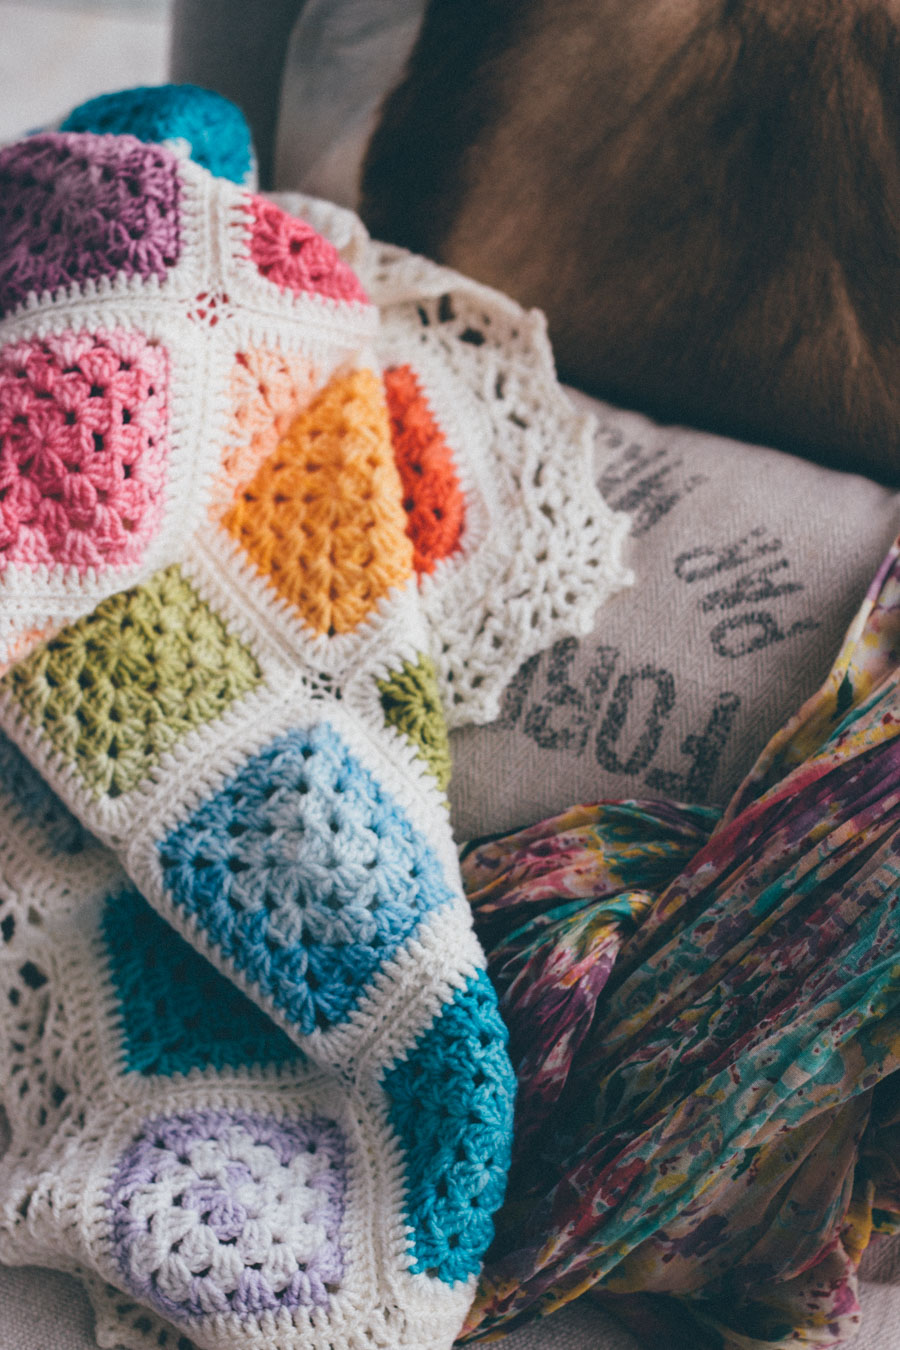 Knitting and crochet retreat